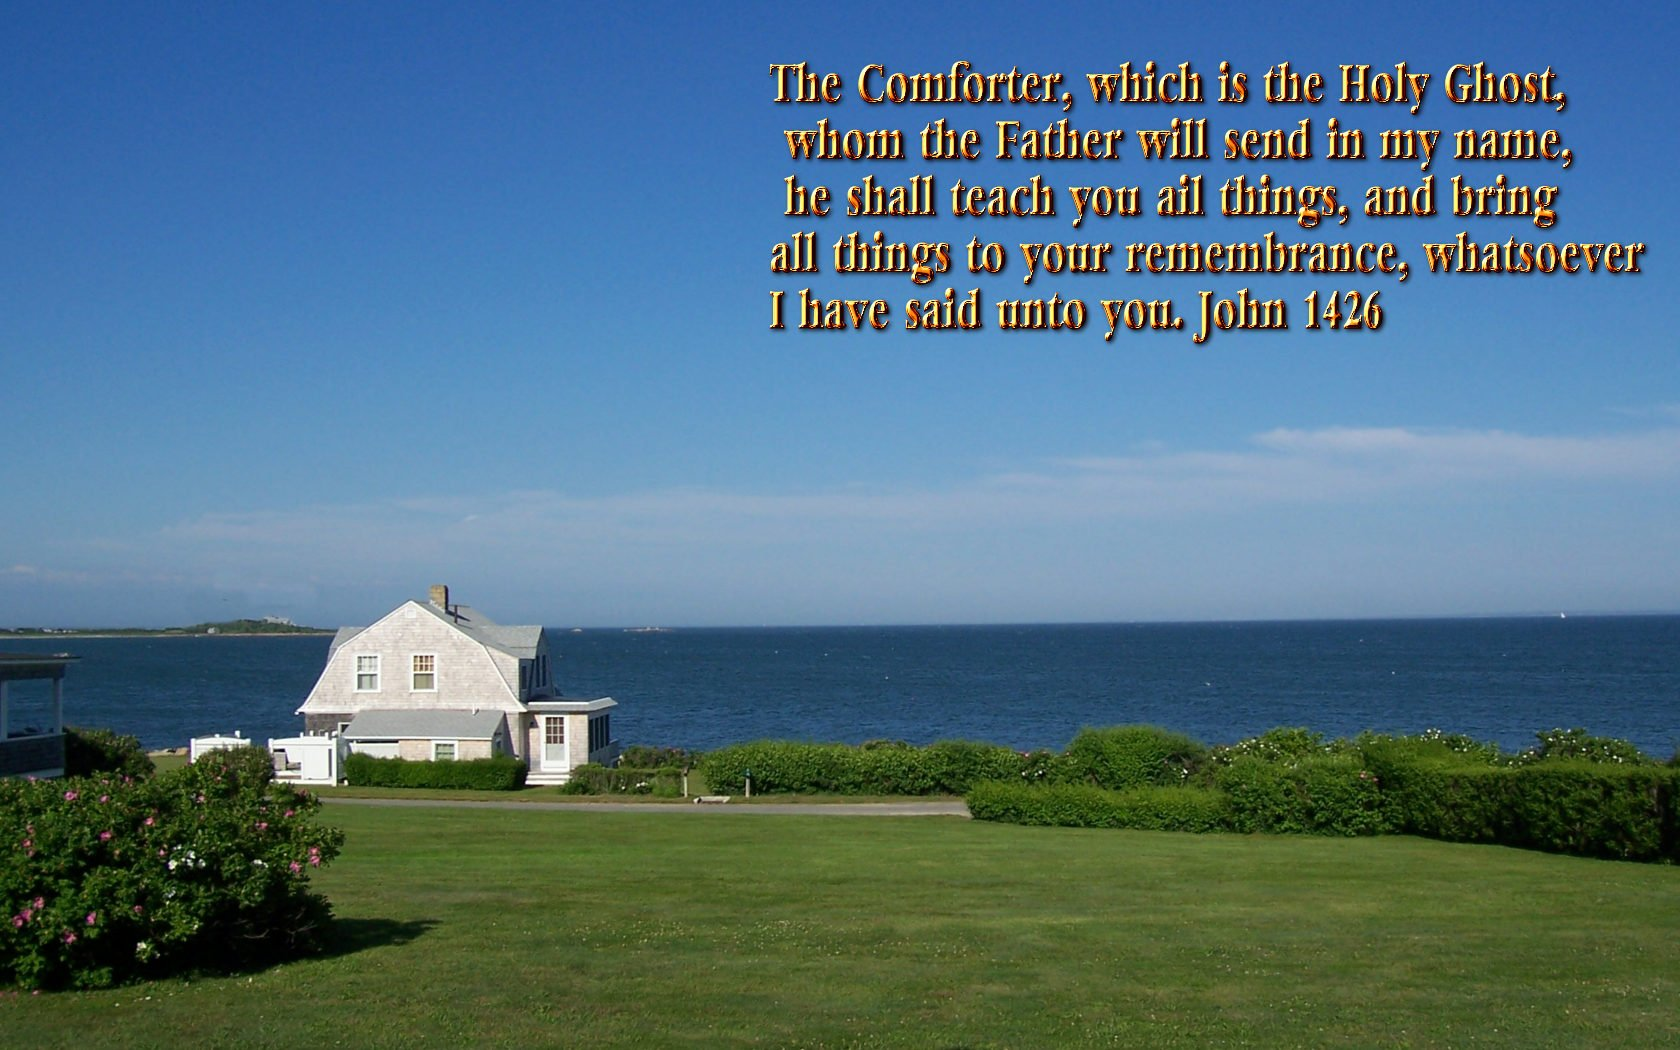 scenic-wallpapers-with-bible-verses-01